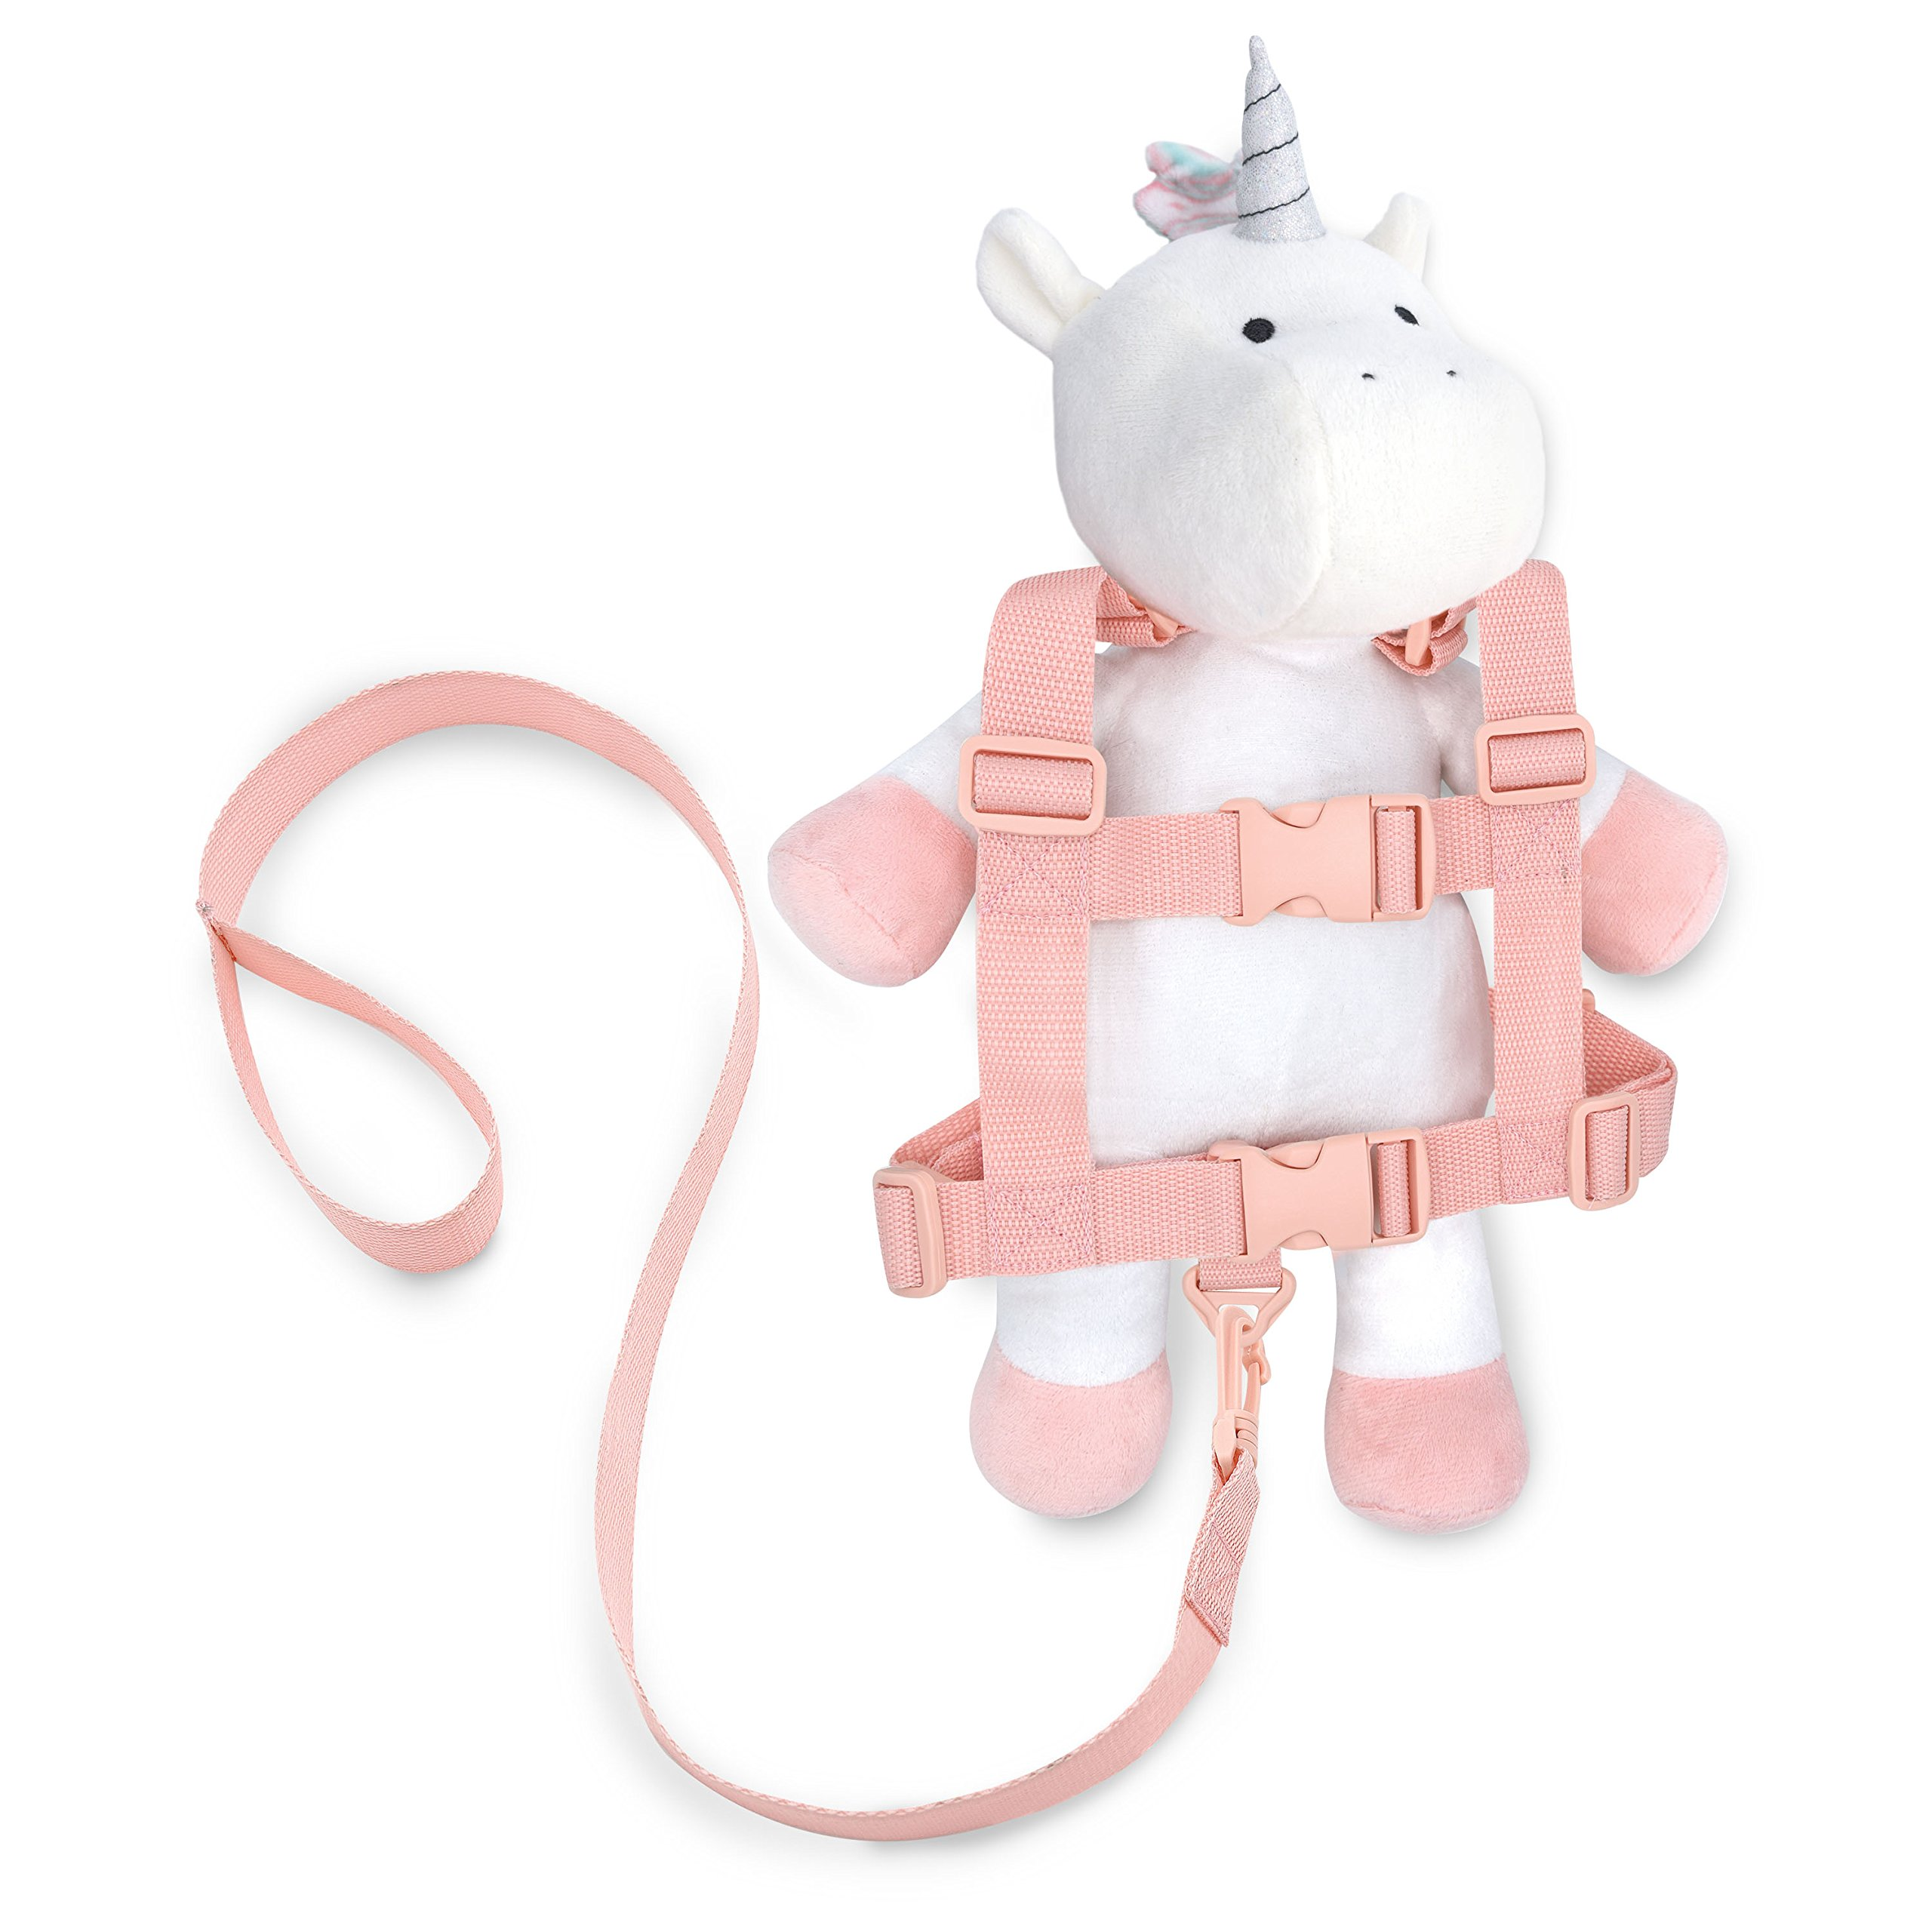 Travel Bug Toddler Character 2-in-1 Safety Harness - Unicorn - White/Pink/Rainbow